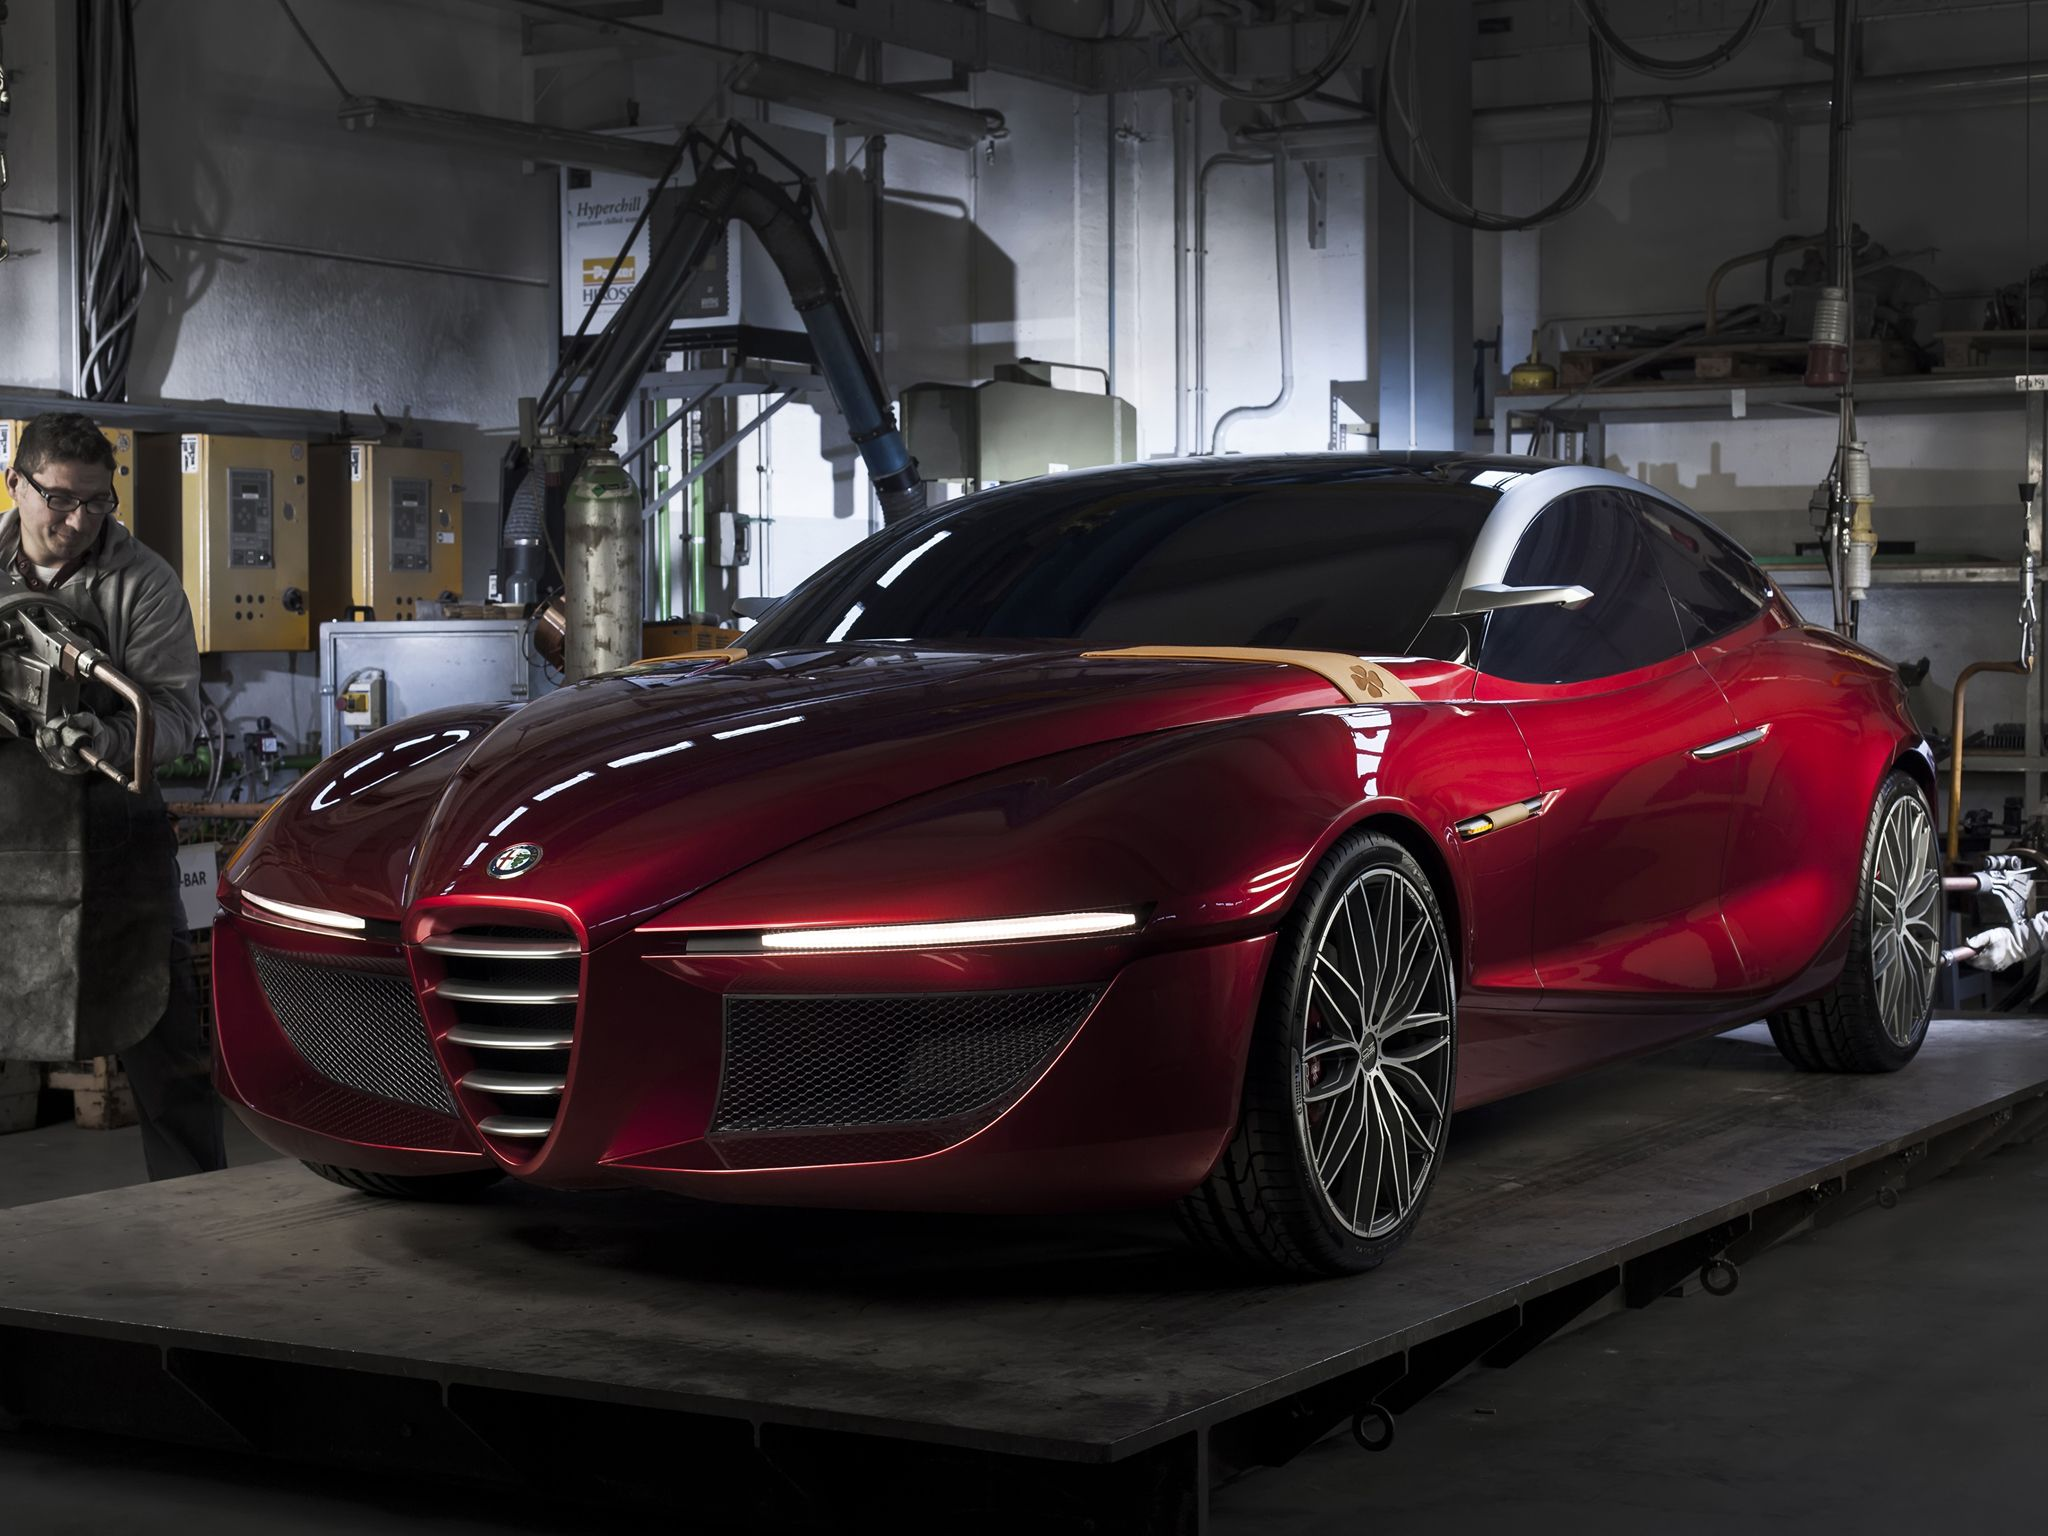 Alfa romeo gloria future car 2013 geneva motor show european design institute ied of turin